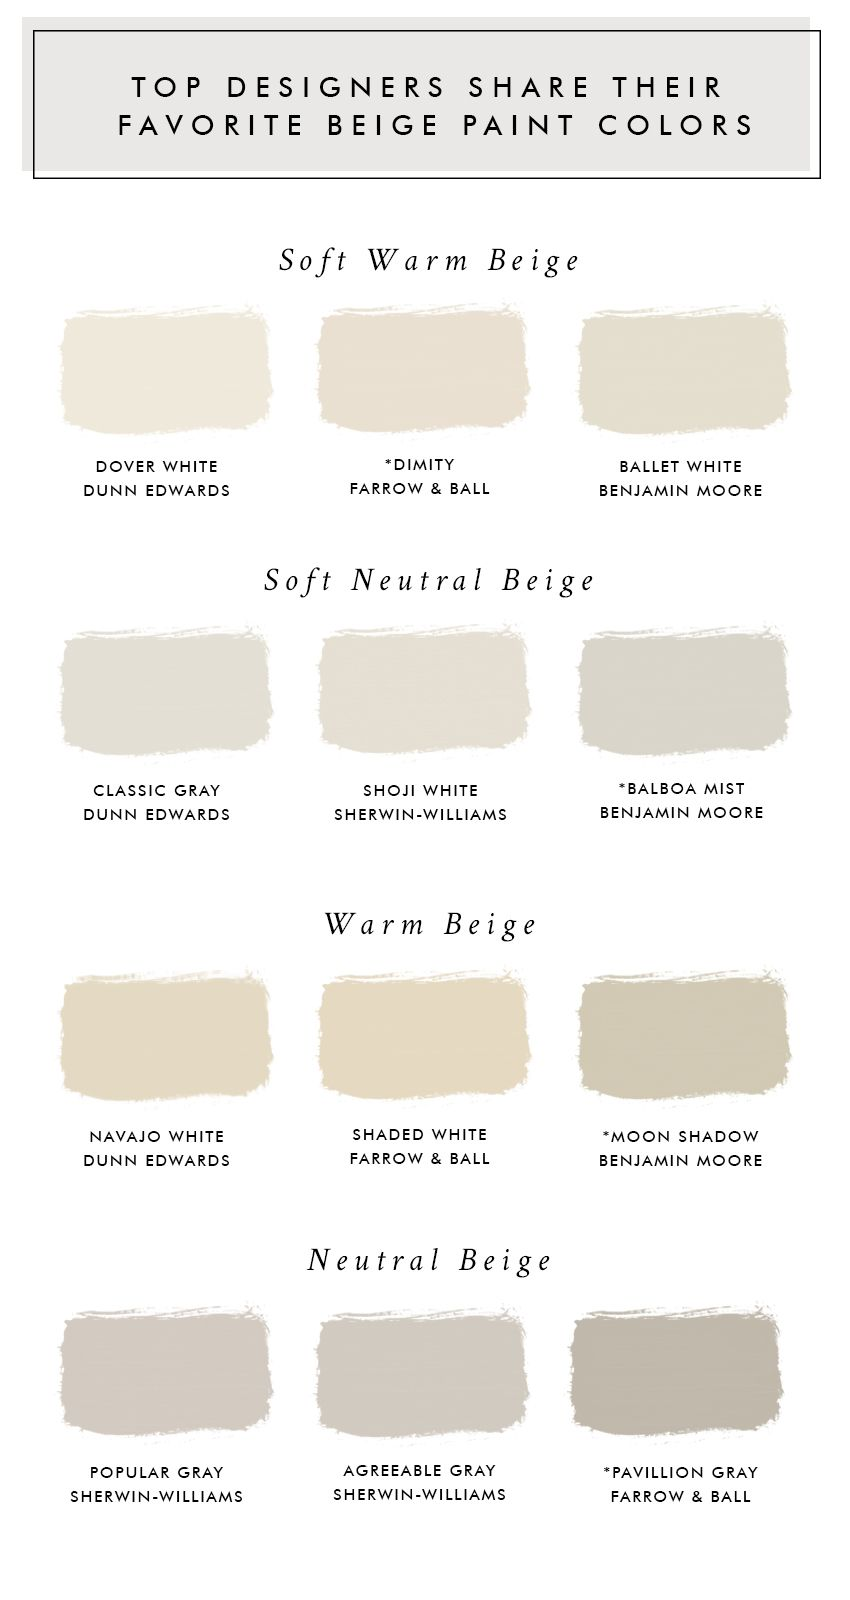 Tips On Blending Great Colors With Beige: Top Designers Share Their Favorite Beige Paint Colors